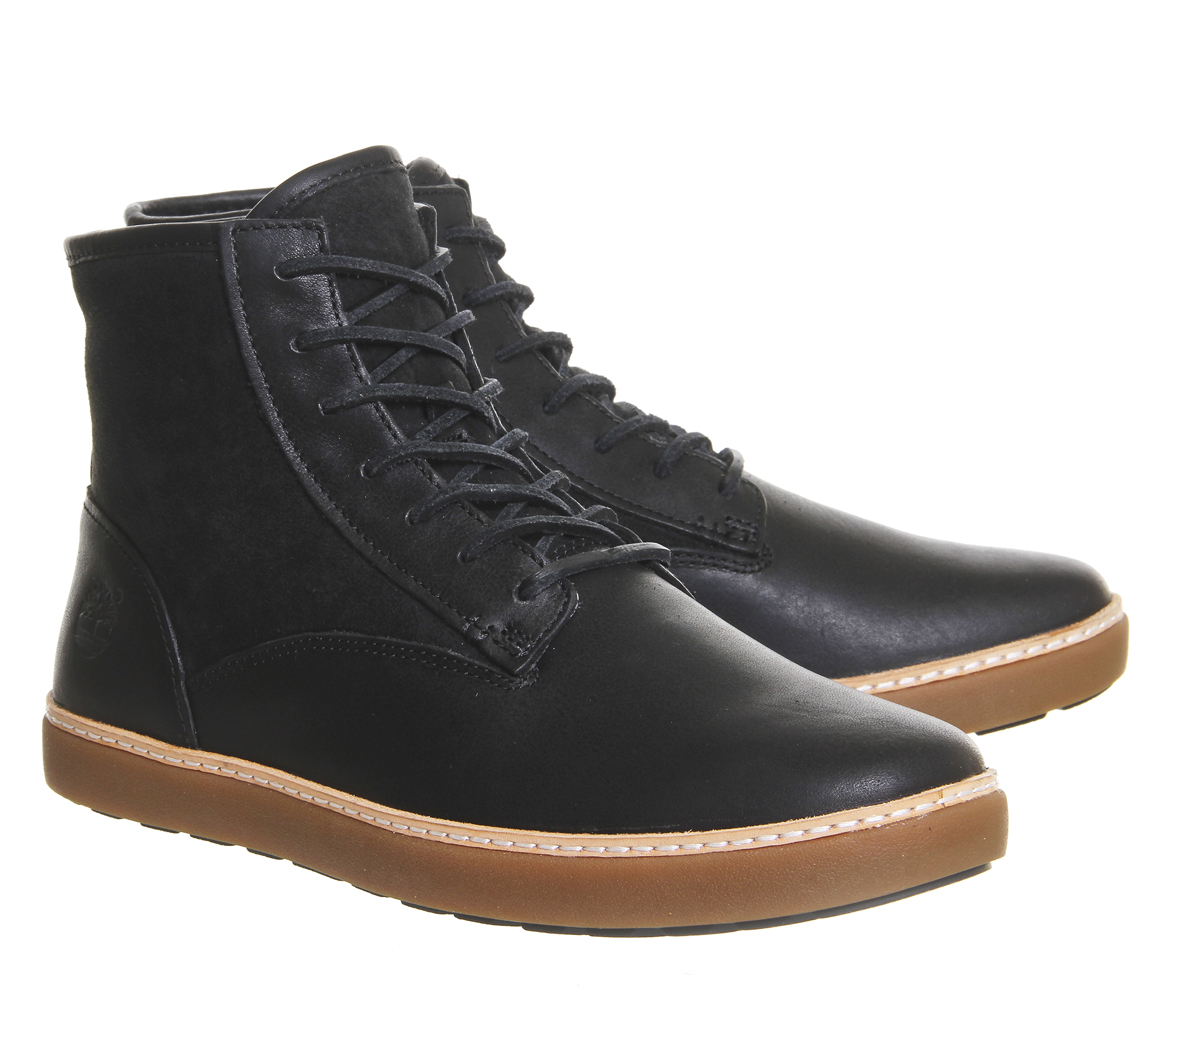 Timberland Black Leather Casual Shoes